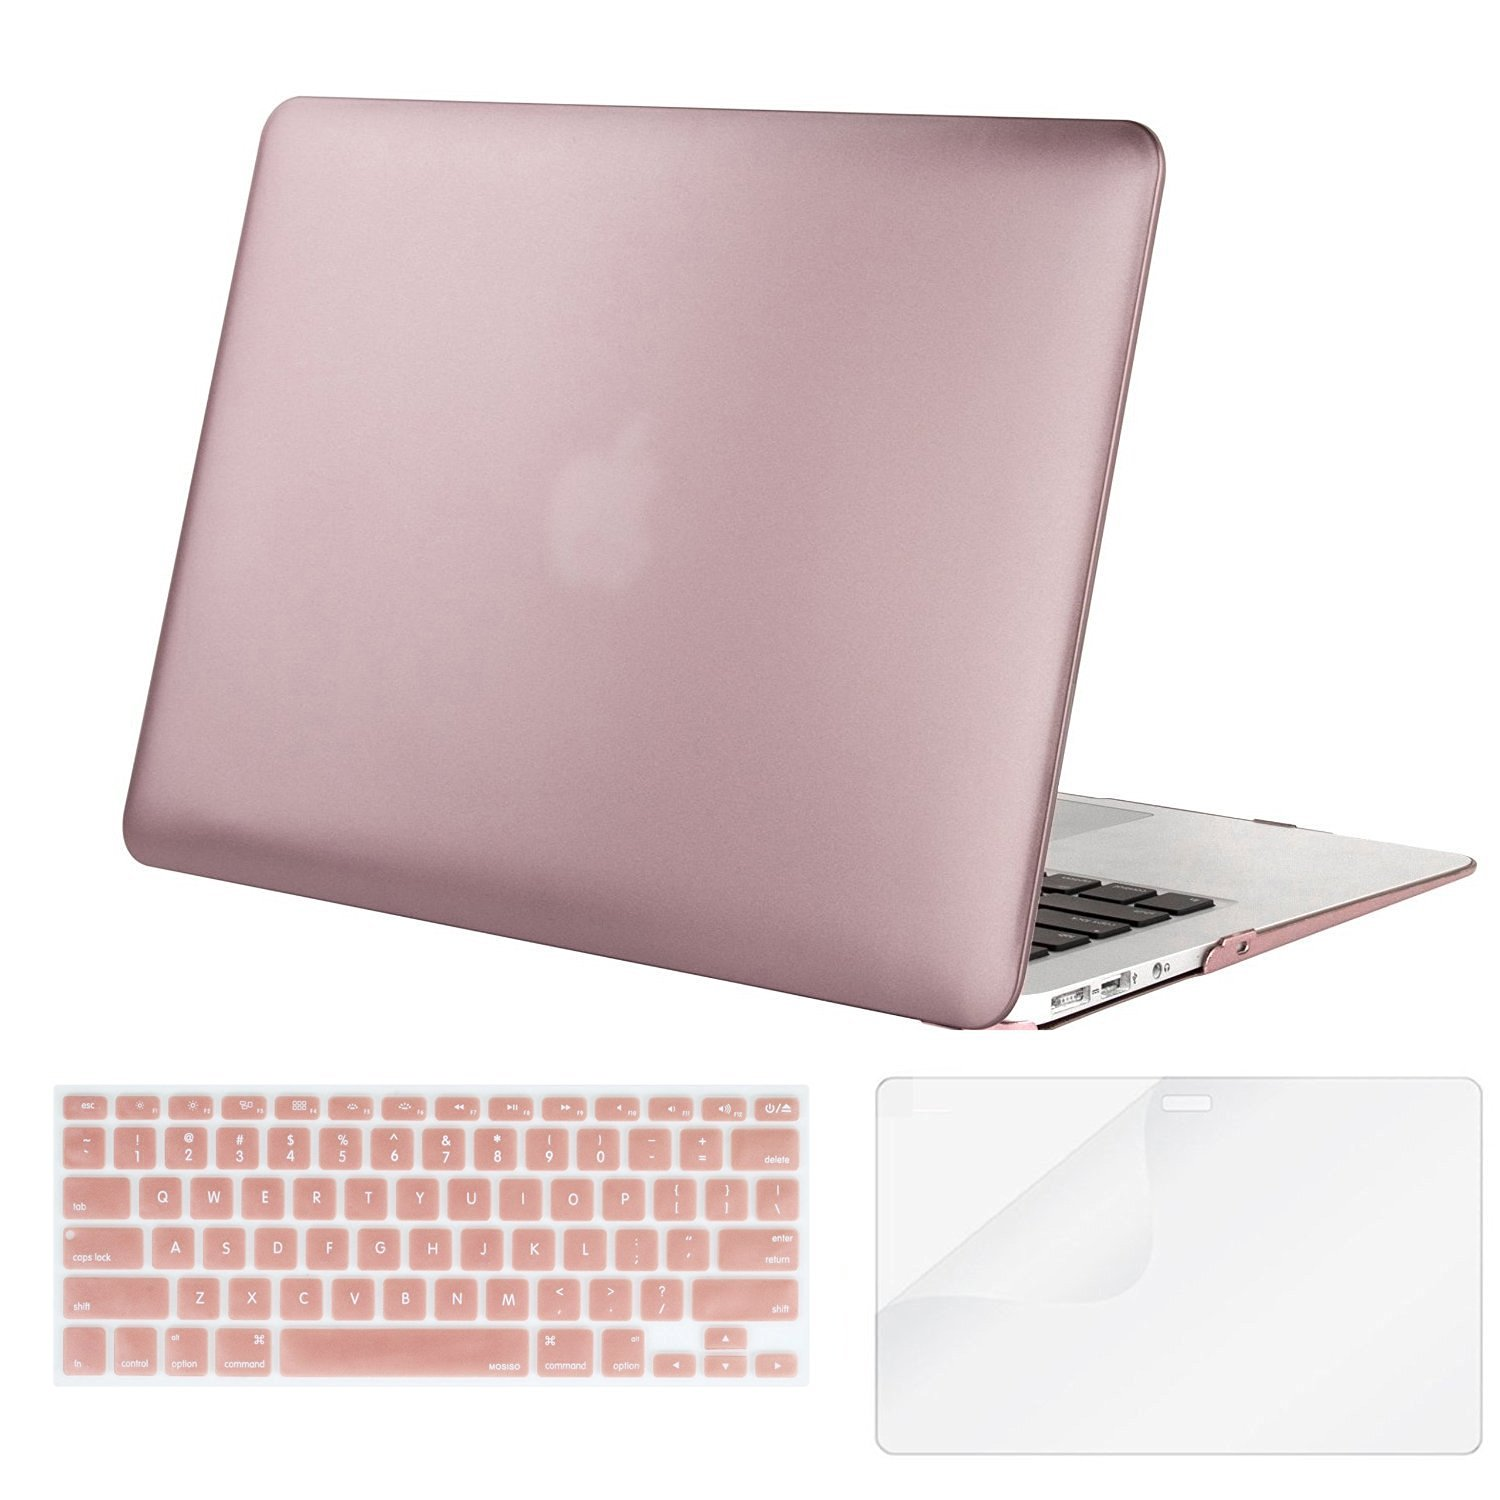 Mosiso Plastic Hard Case with Keyboard Cover with Screen Protector for MacBook Air 13 Inch (Models: A1369 and A1466),Baby Pink